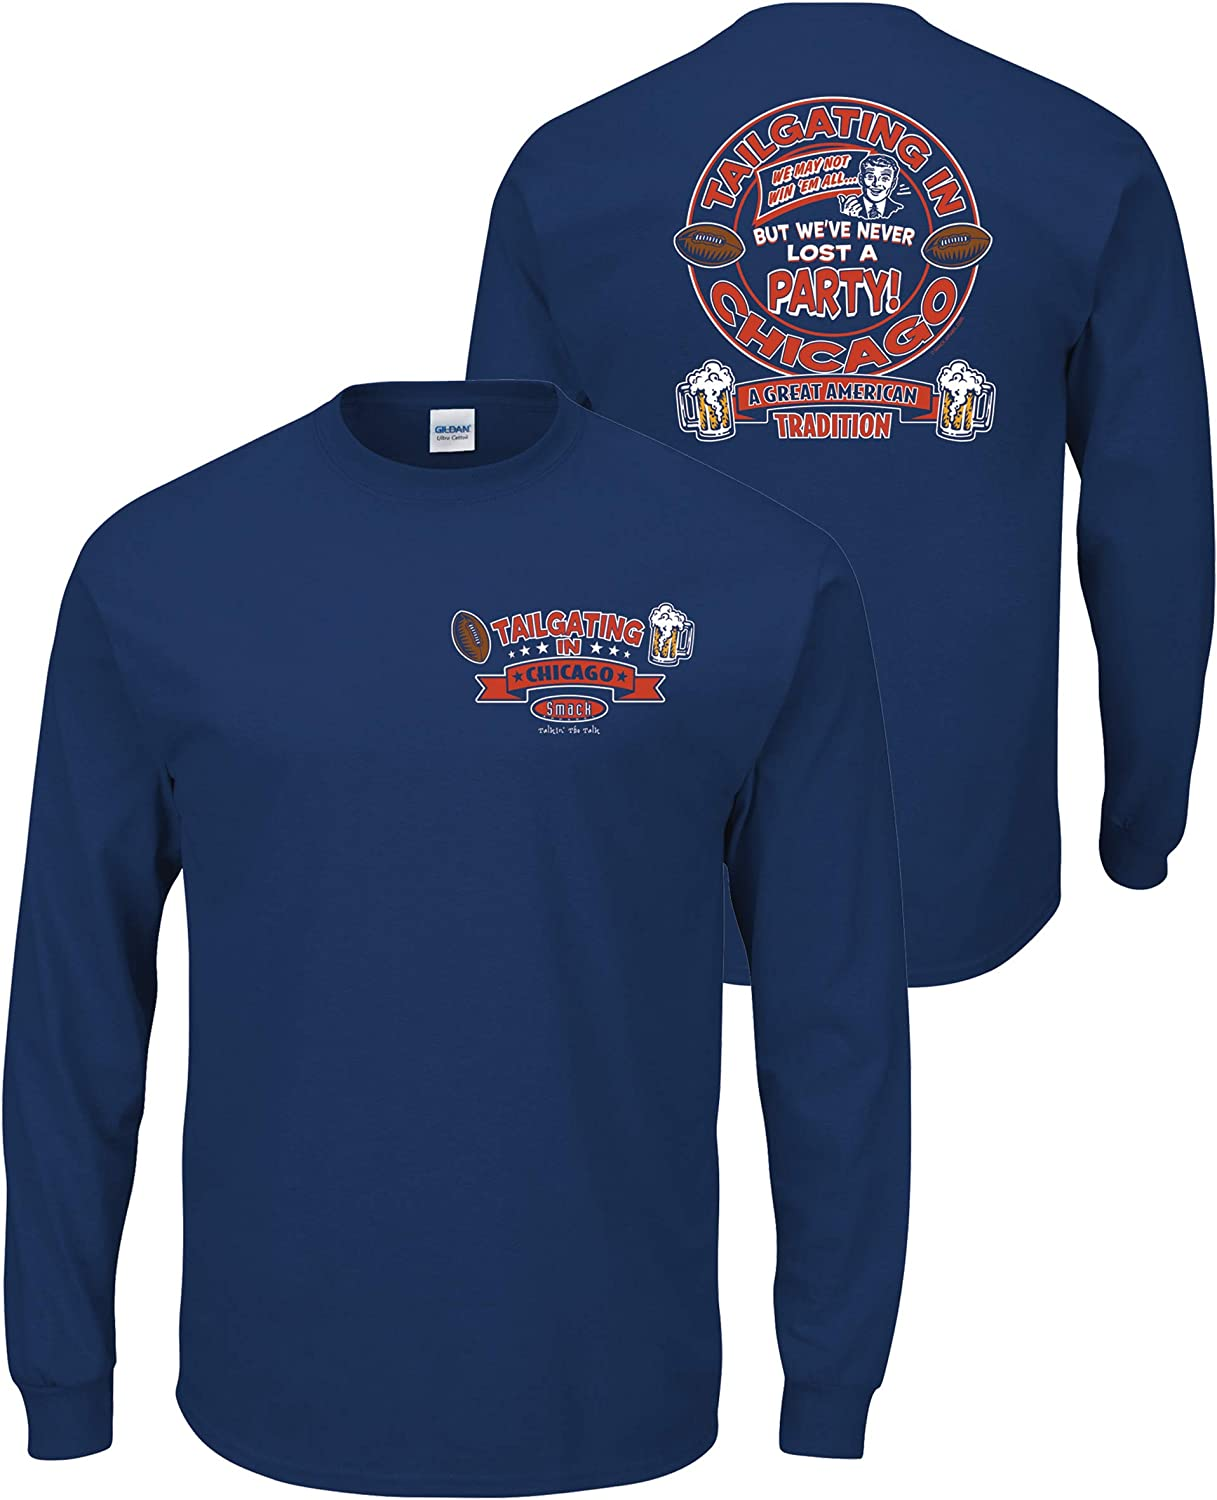 Smack Apparel Chicago Football Fans Sm-5X Tailgating in Chicago Navy T-Shirt